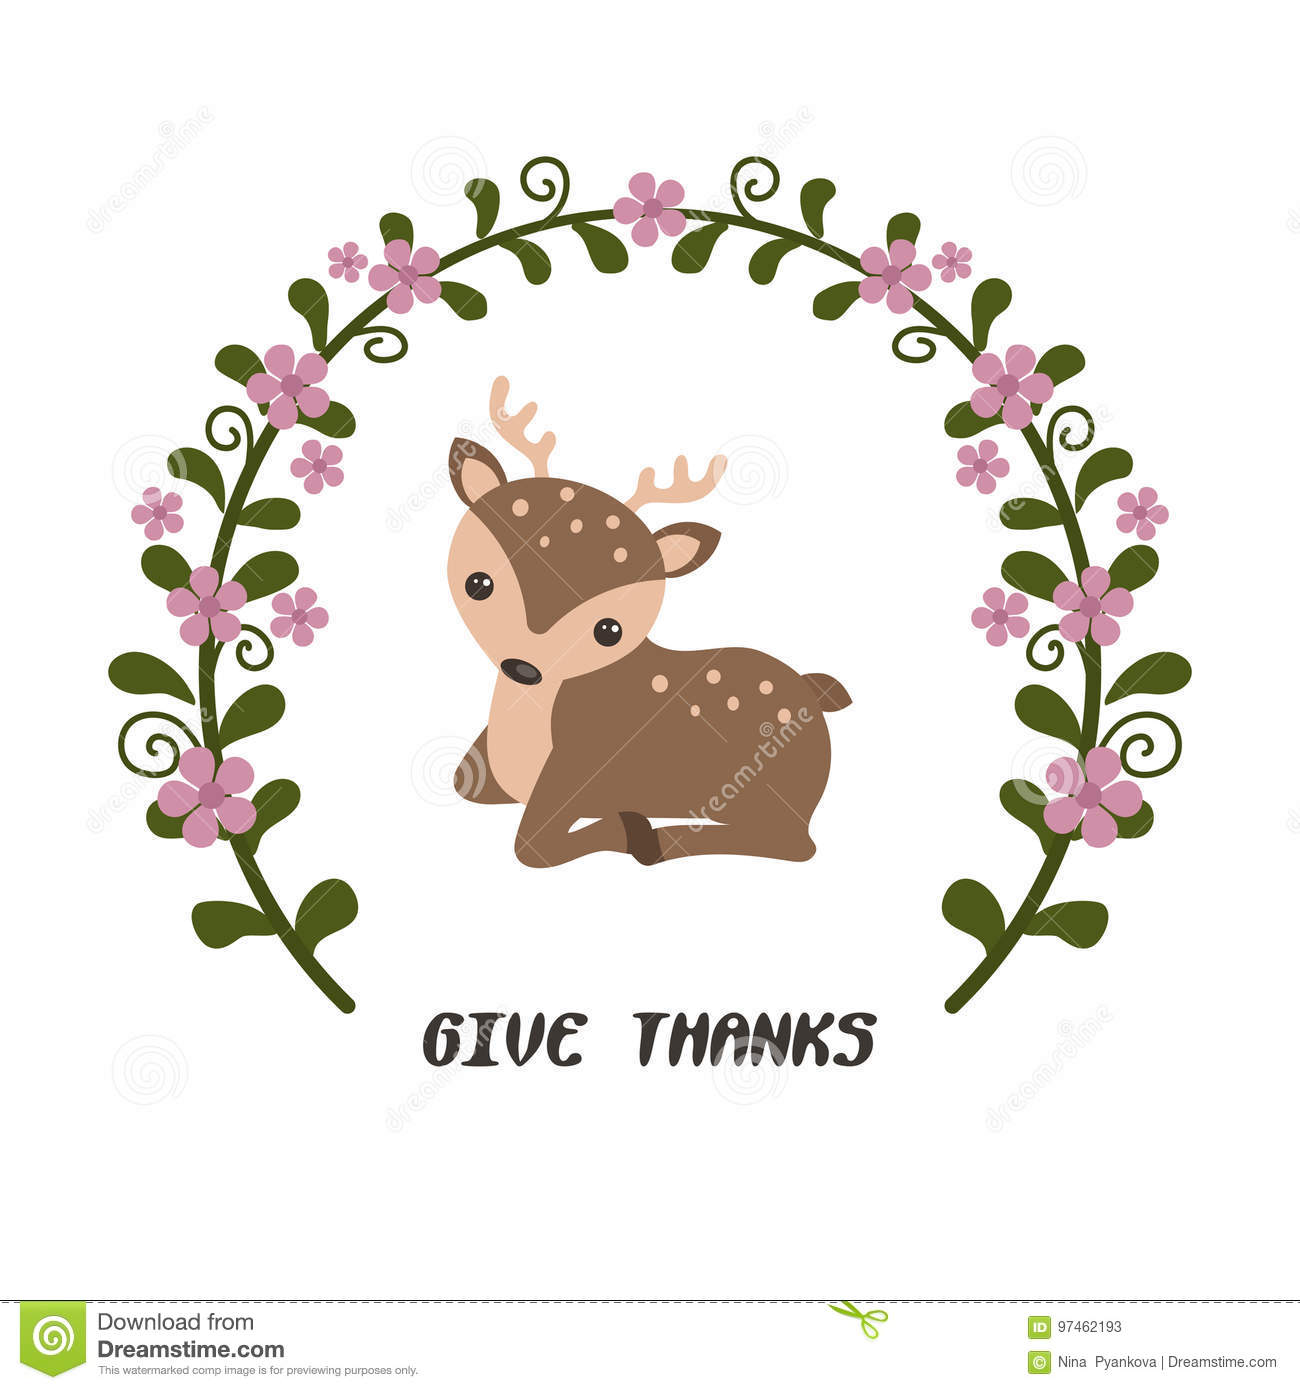 Card with deer stock vector. Illustration of cute, decor - 97462193